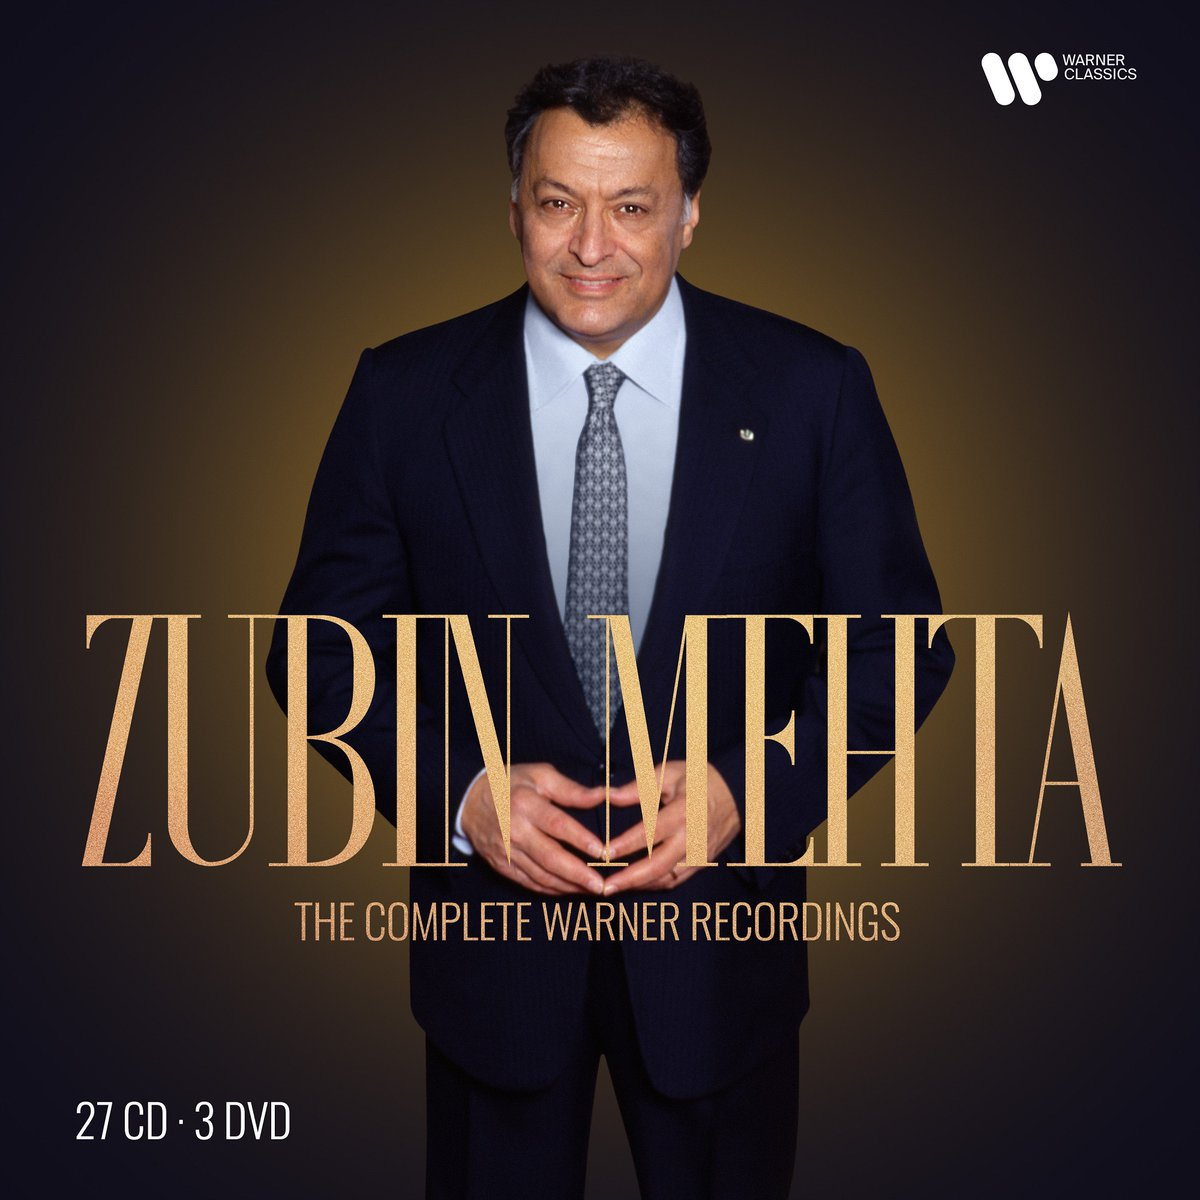 The Complete Warner Recordings of Zubin Mehta represent a significant part of his musical legacy, encompassing orchestral, choral, operatic, and song repertoire of the 19th and 20th centuries 🌟  Discover the newly released collection: https://t.co/FXJgU2dGse https://t.co/KtzQ2yq44r